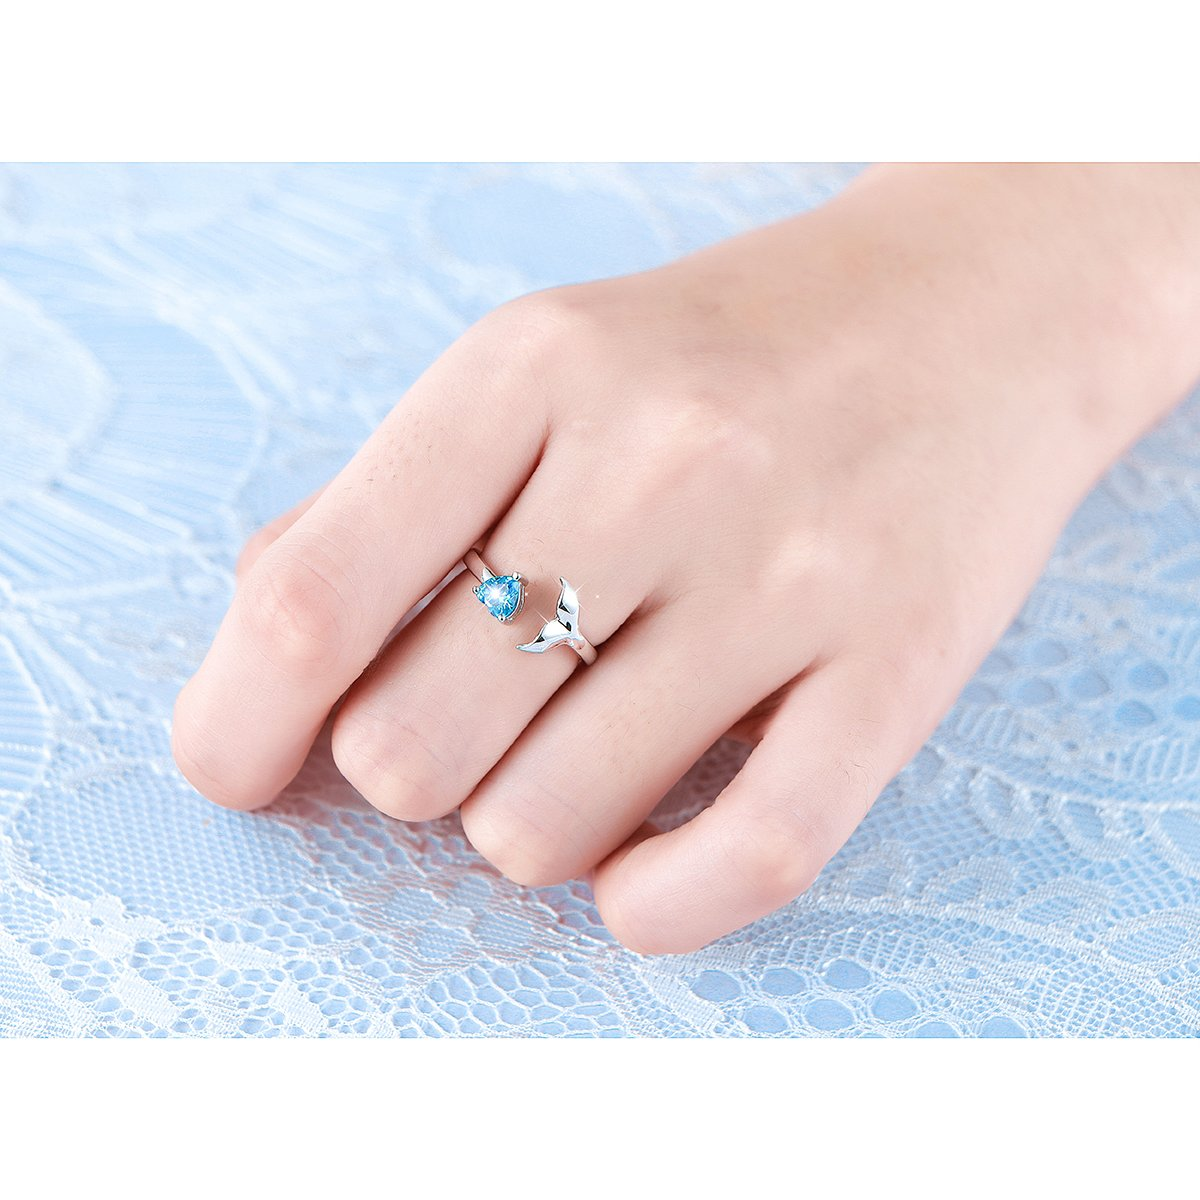 Amazon.com: S925 Sterling Sliver Dolphin Mermaid Tail Ring Cubic ...